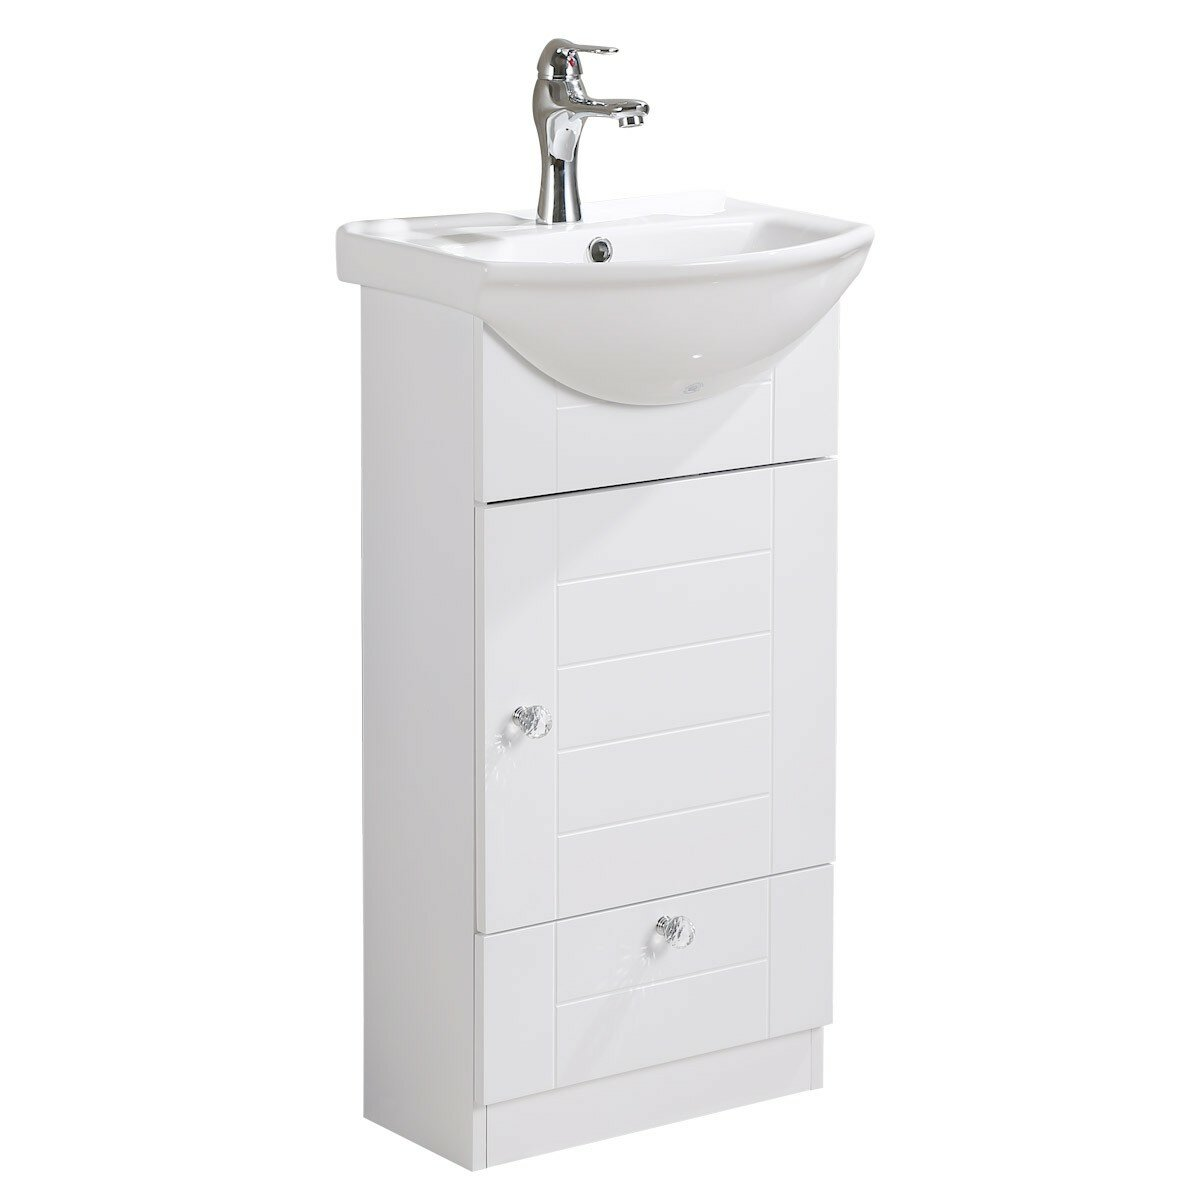 The Renovators Supply Inc Small Vanity Vitreous China 18 Wall